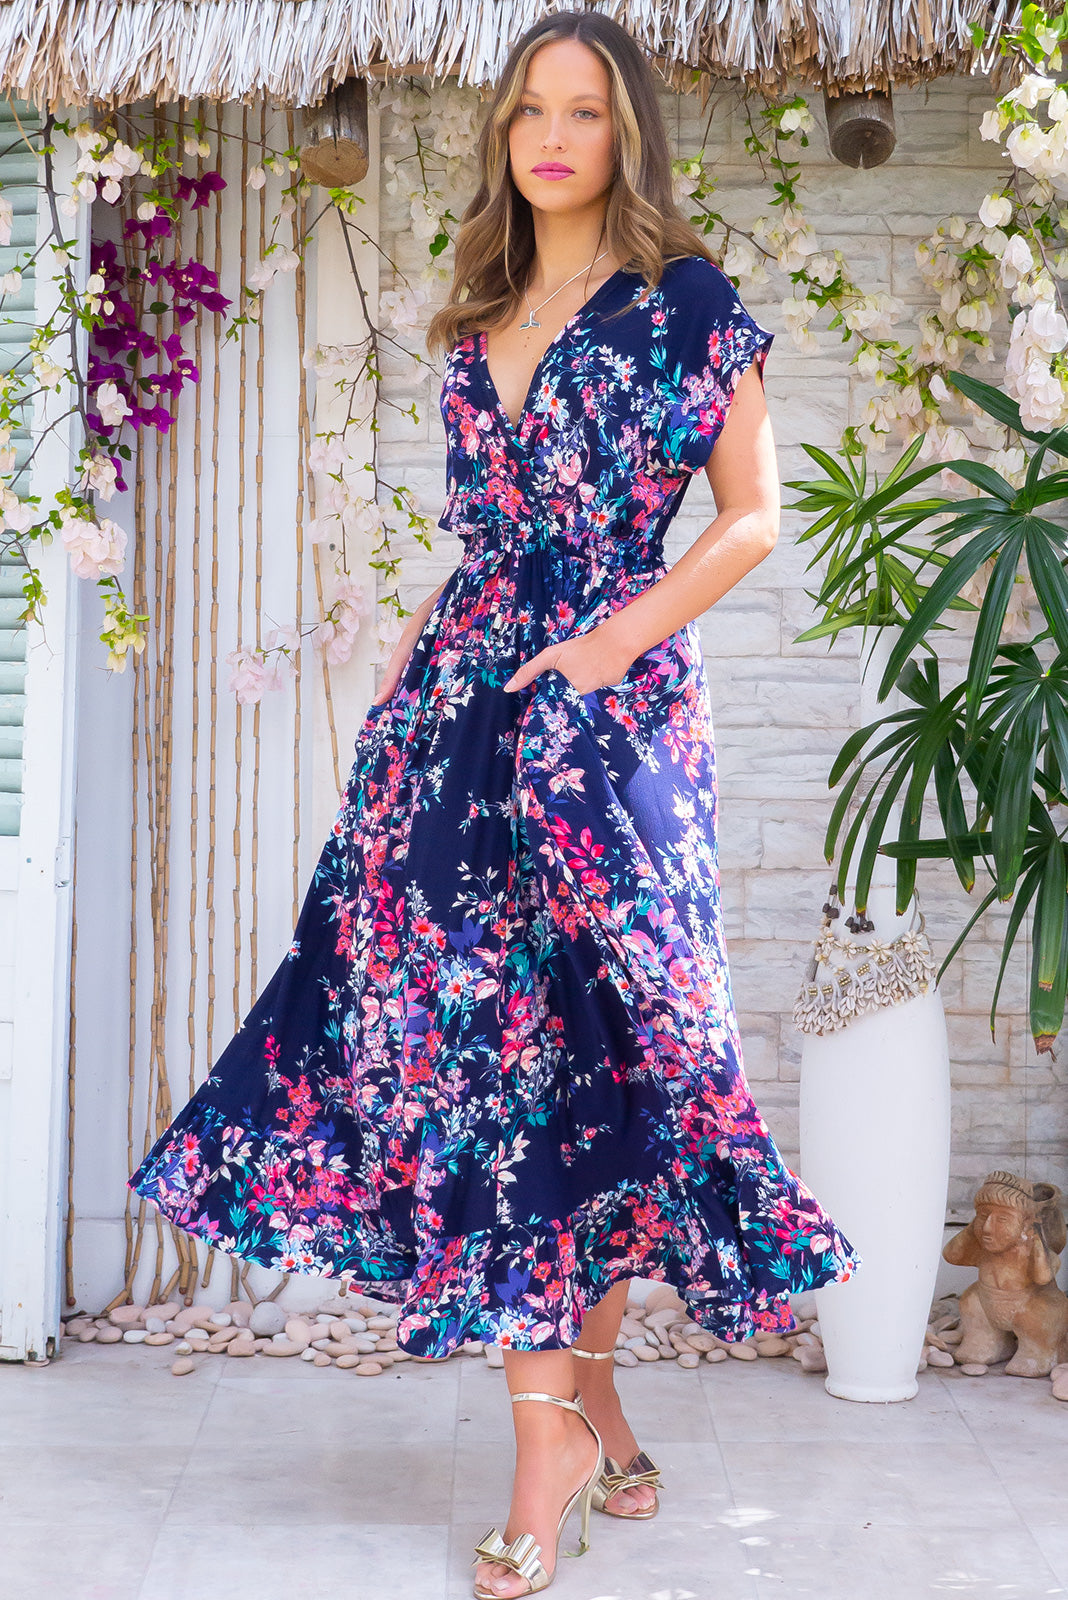 The Willow Navy Splash Maxi Dress features V-neck with lace feature, cap sleeves, elasticated waist with adjustable drawstring, frill hem and Crinkle textured woven 100% rayon in navy base with bright floral print.